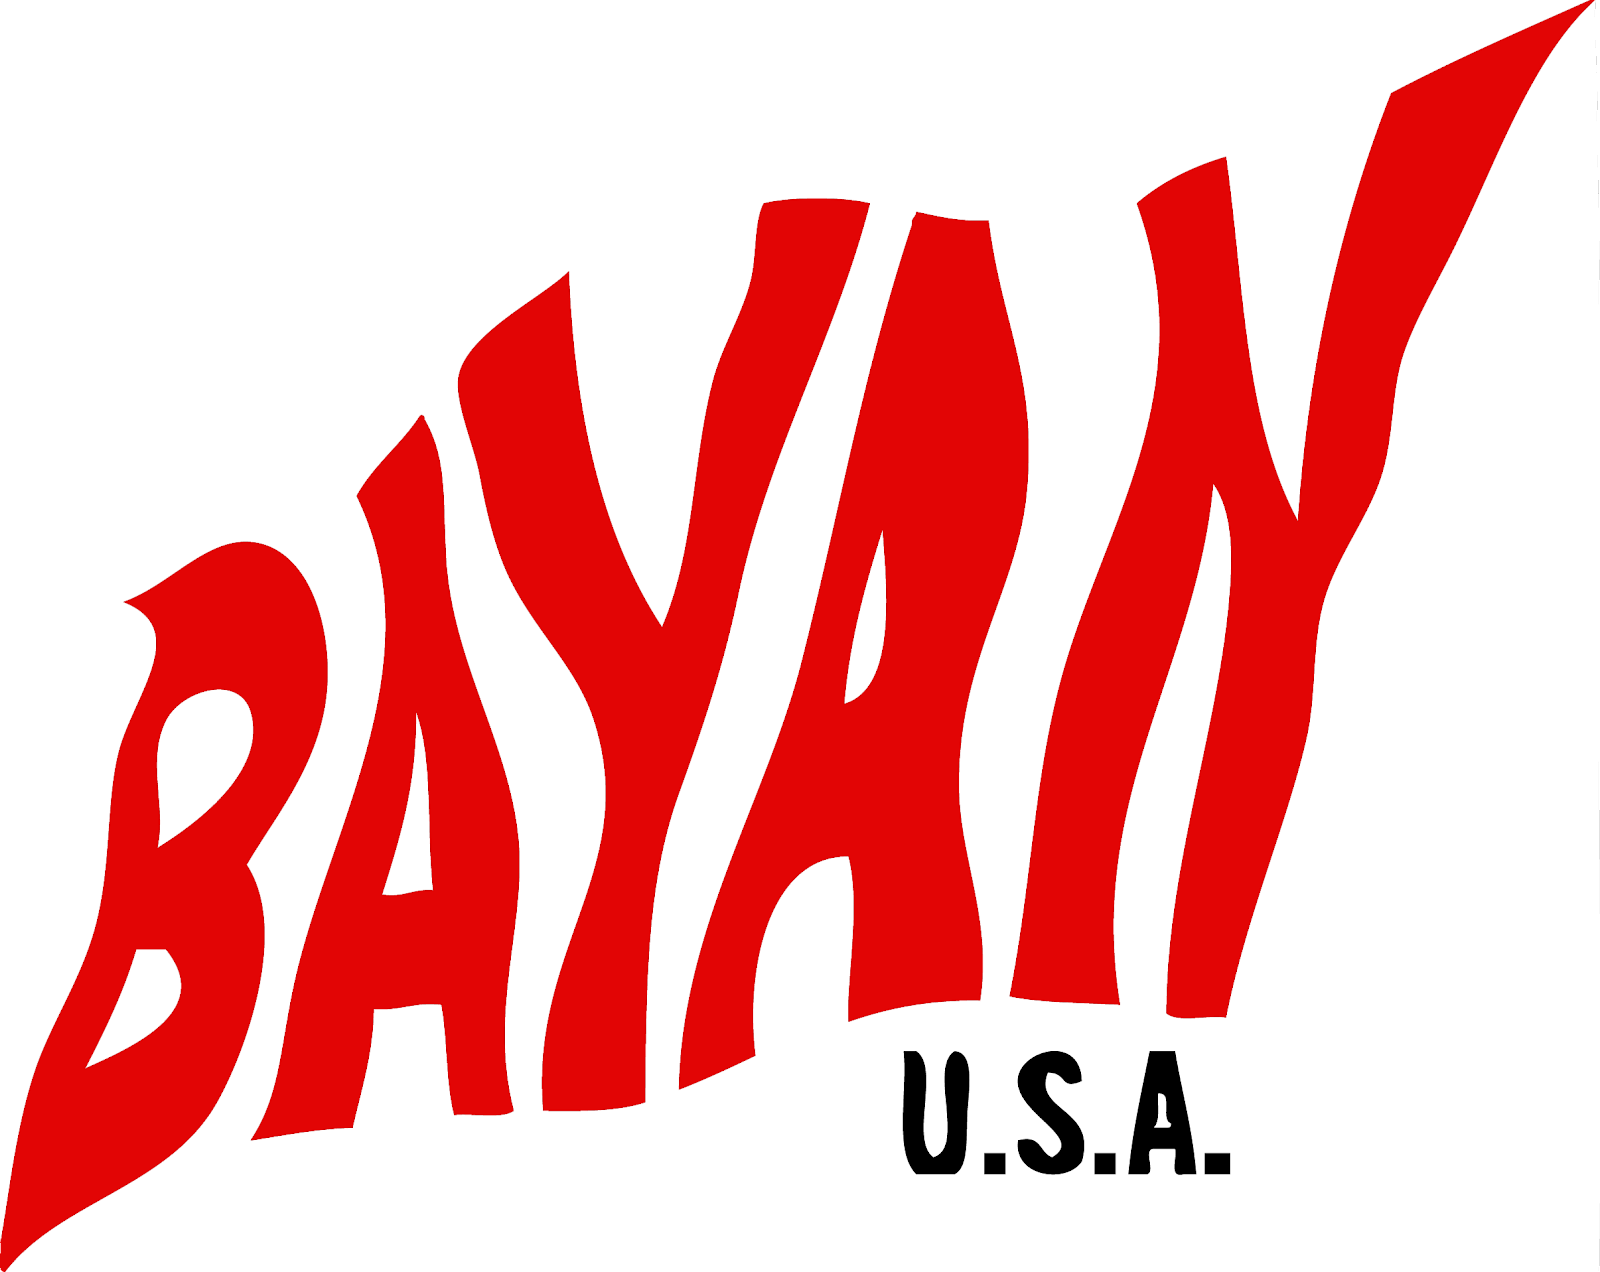 BAYAN USA Logo - Large Red.png